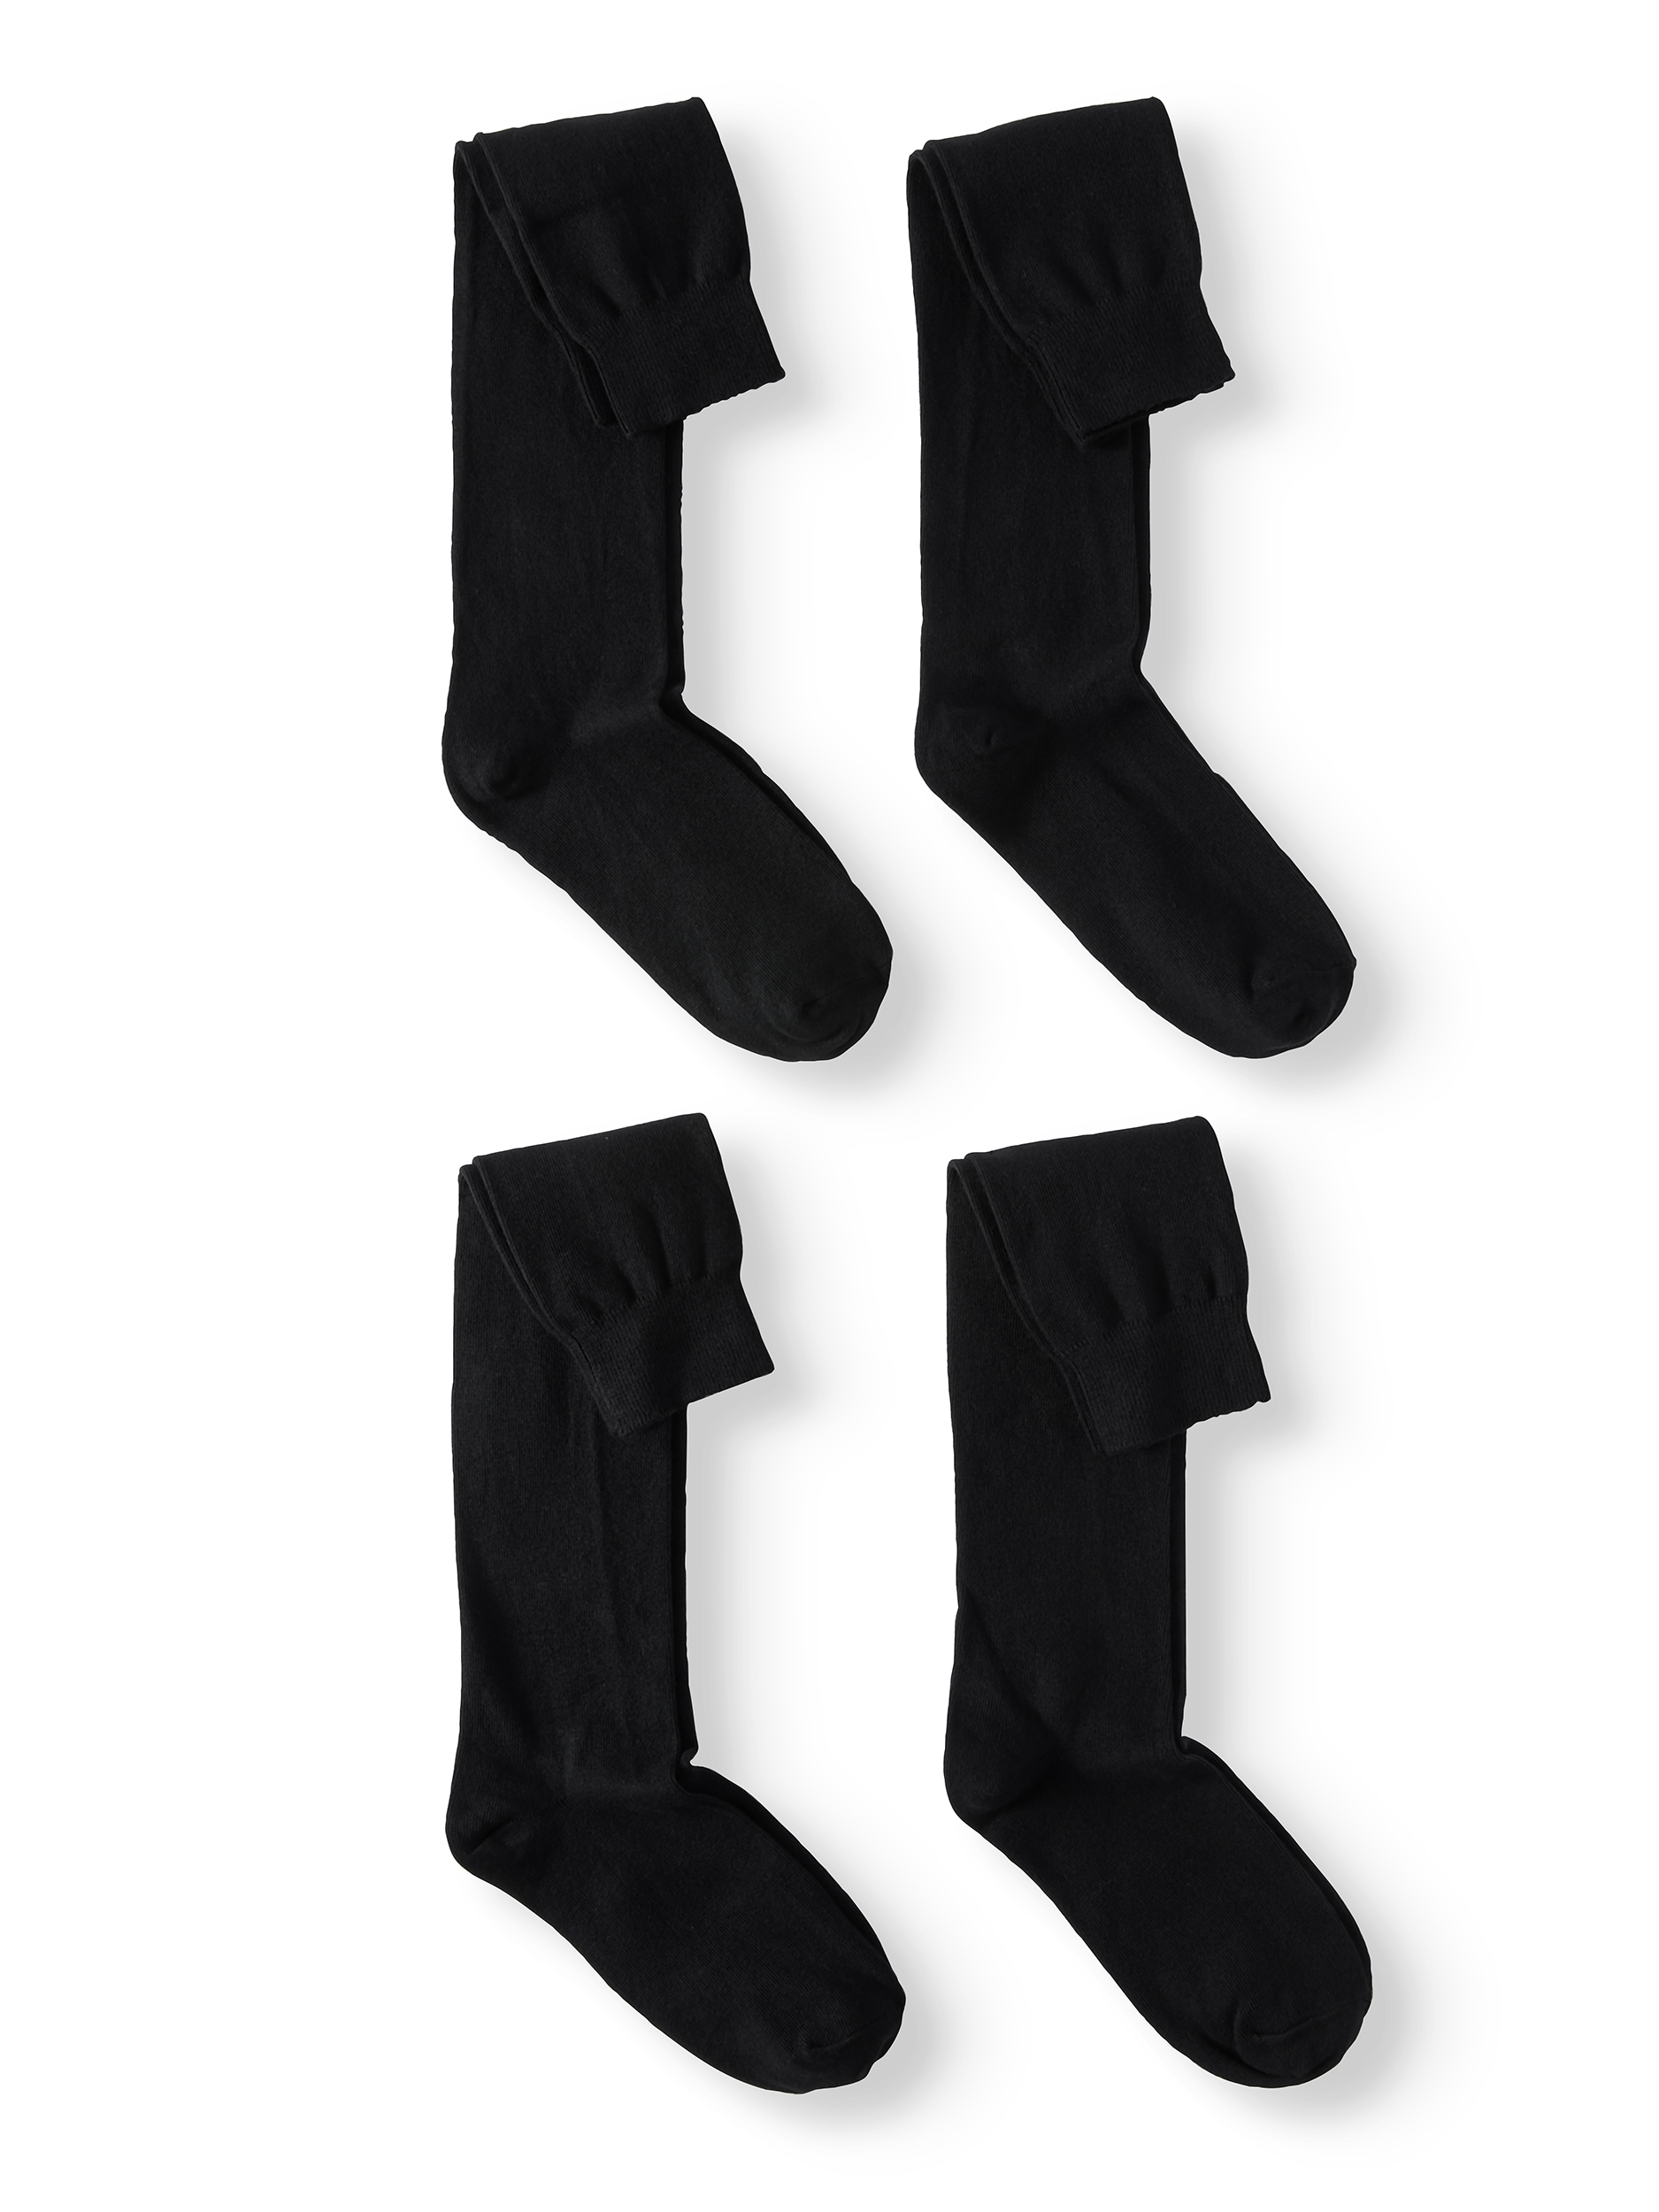 Jefferies Socks School Uniform Cotton Knee High Socks, 4 Pairs (Little Girls & Big Girls)